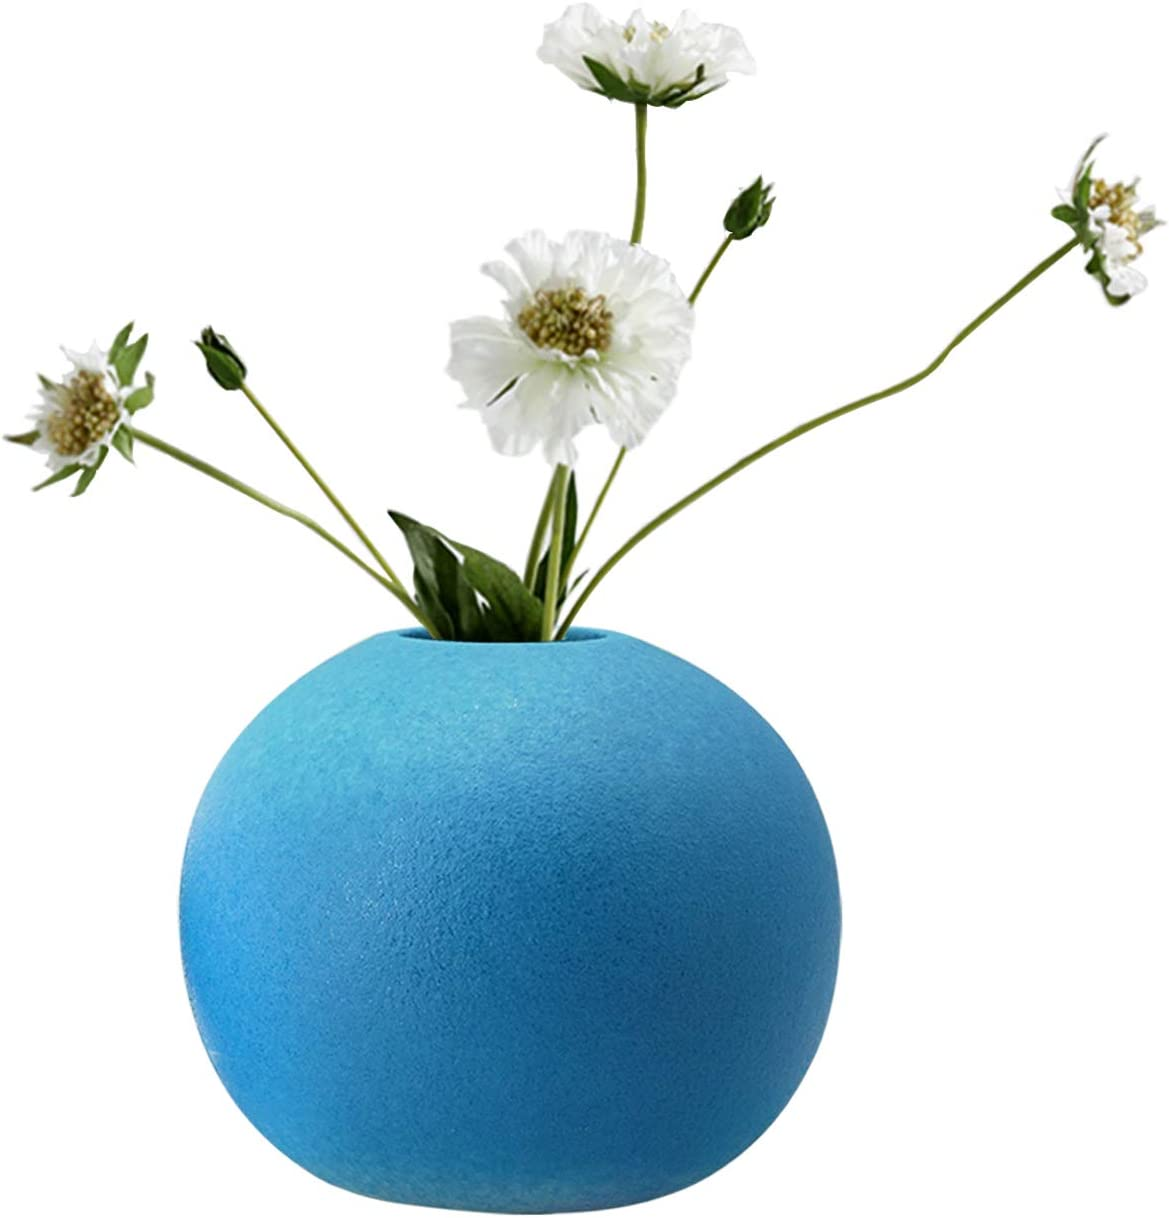 Amazon Com Gelive Small Round Ceramic Bud Vase Decorative Flower Vase Hydroponics Container Reed Diffuser Floral Vases For Home Decor Centerpieces Blue Home Kitchen